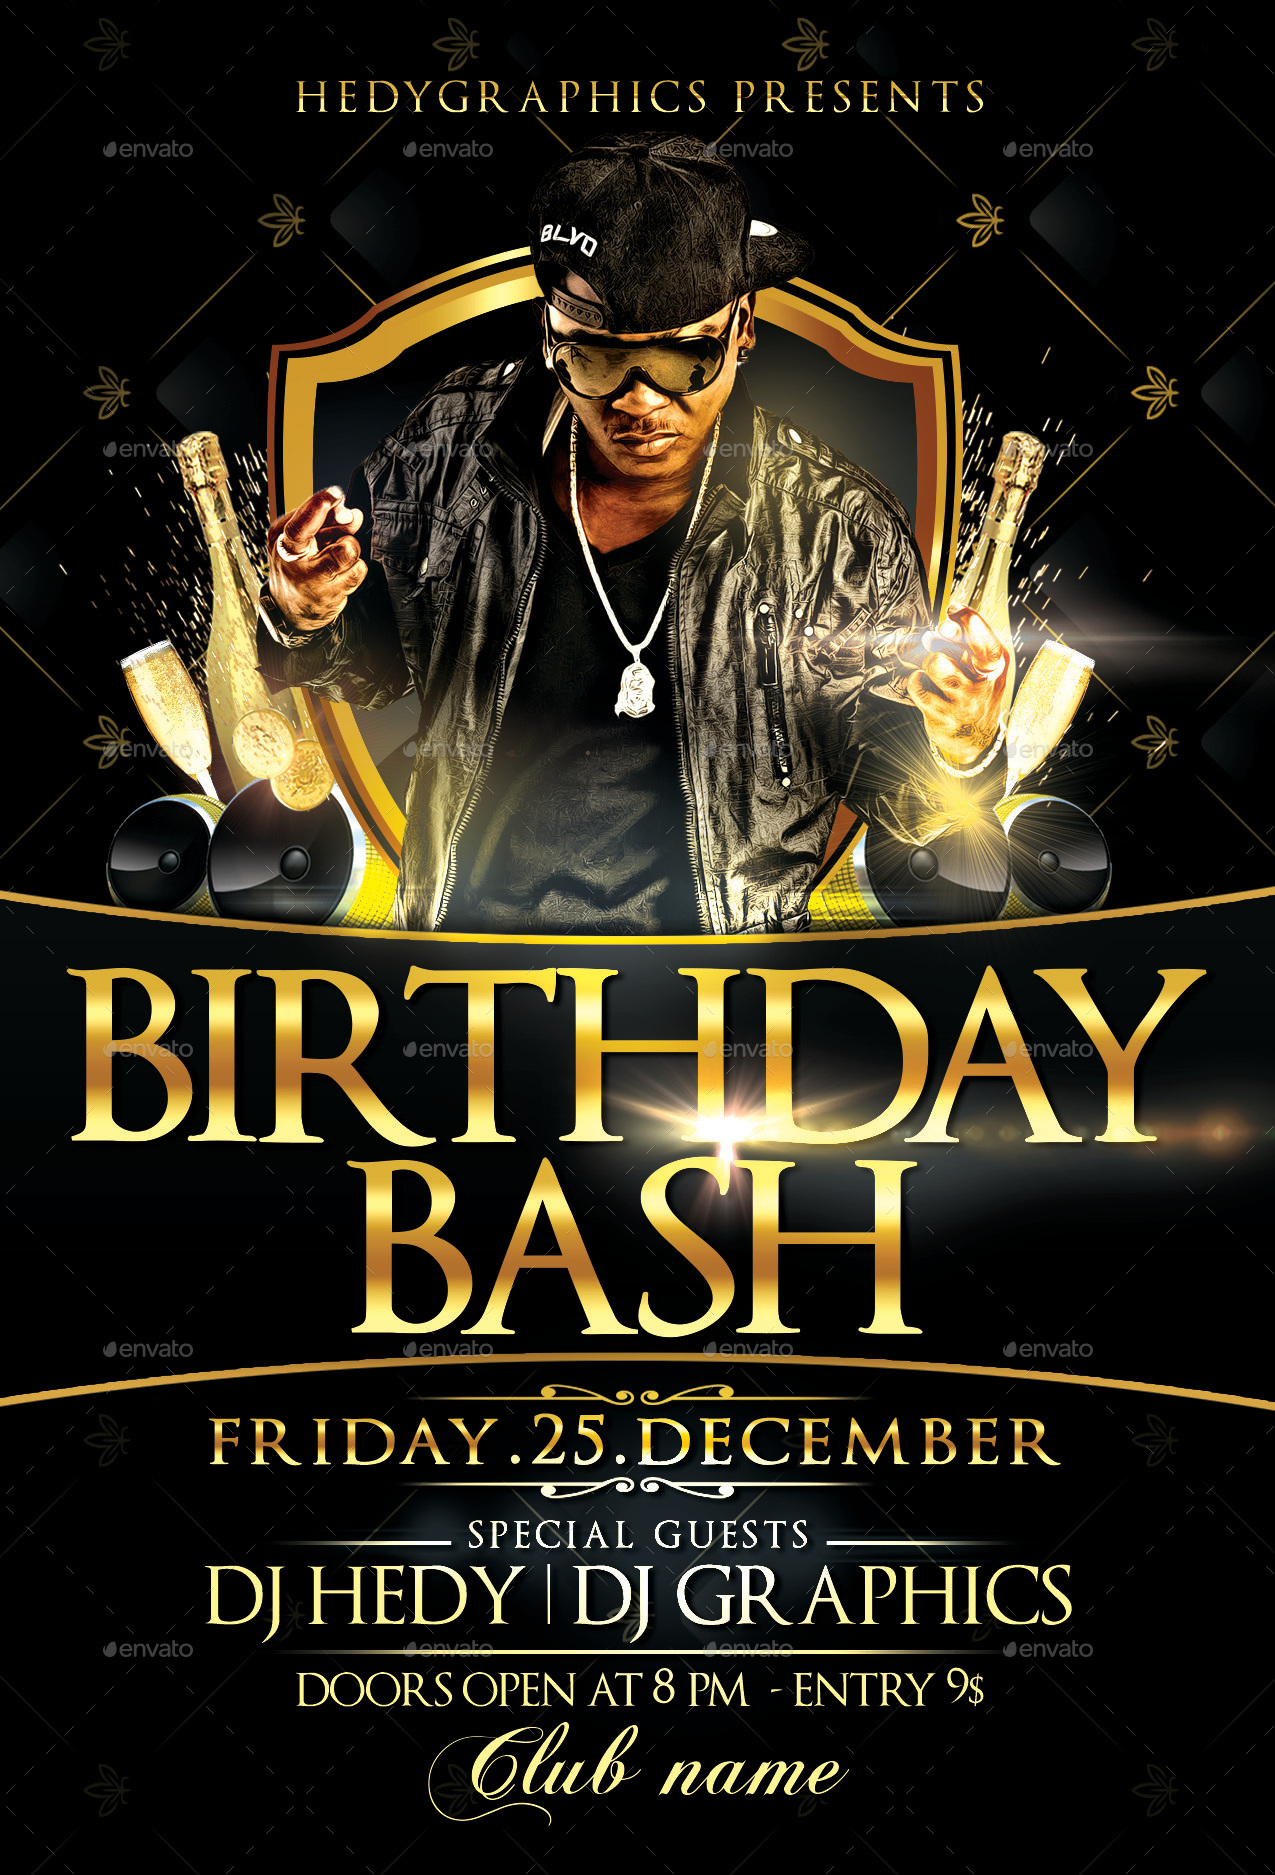 birthday bash flyer background ; birthday-bash-flyer-template-by-hedygraphics-graphicriver